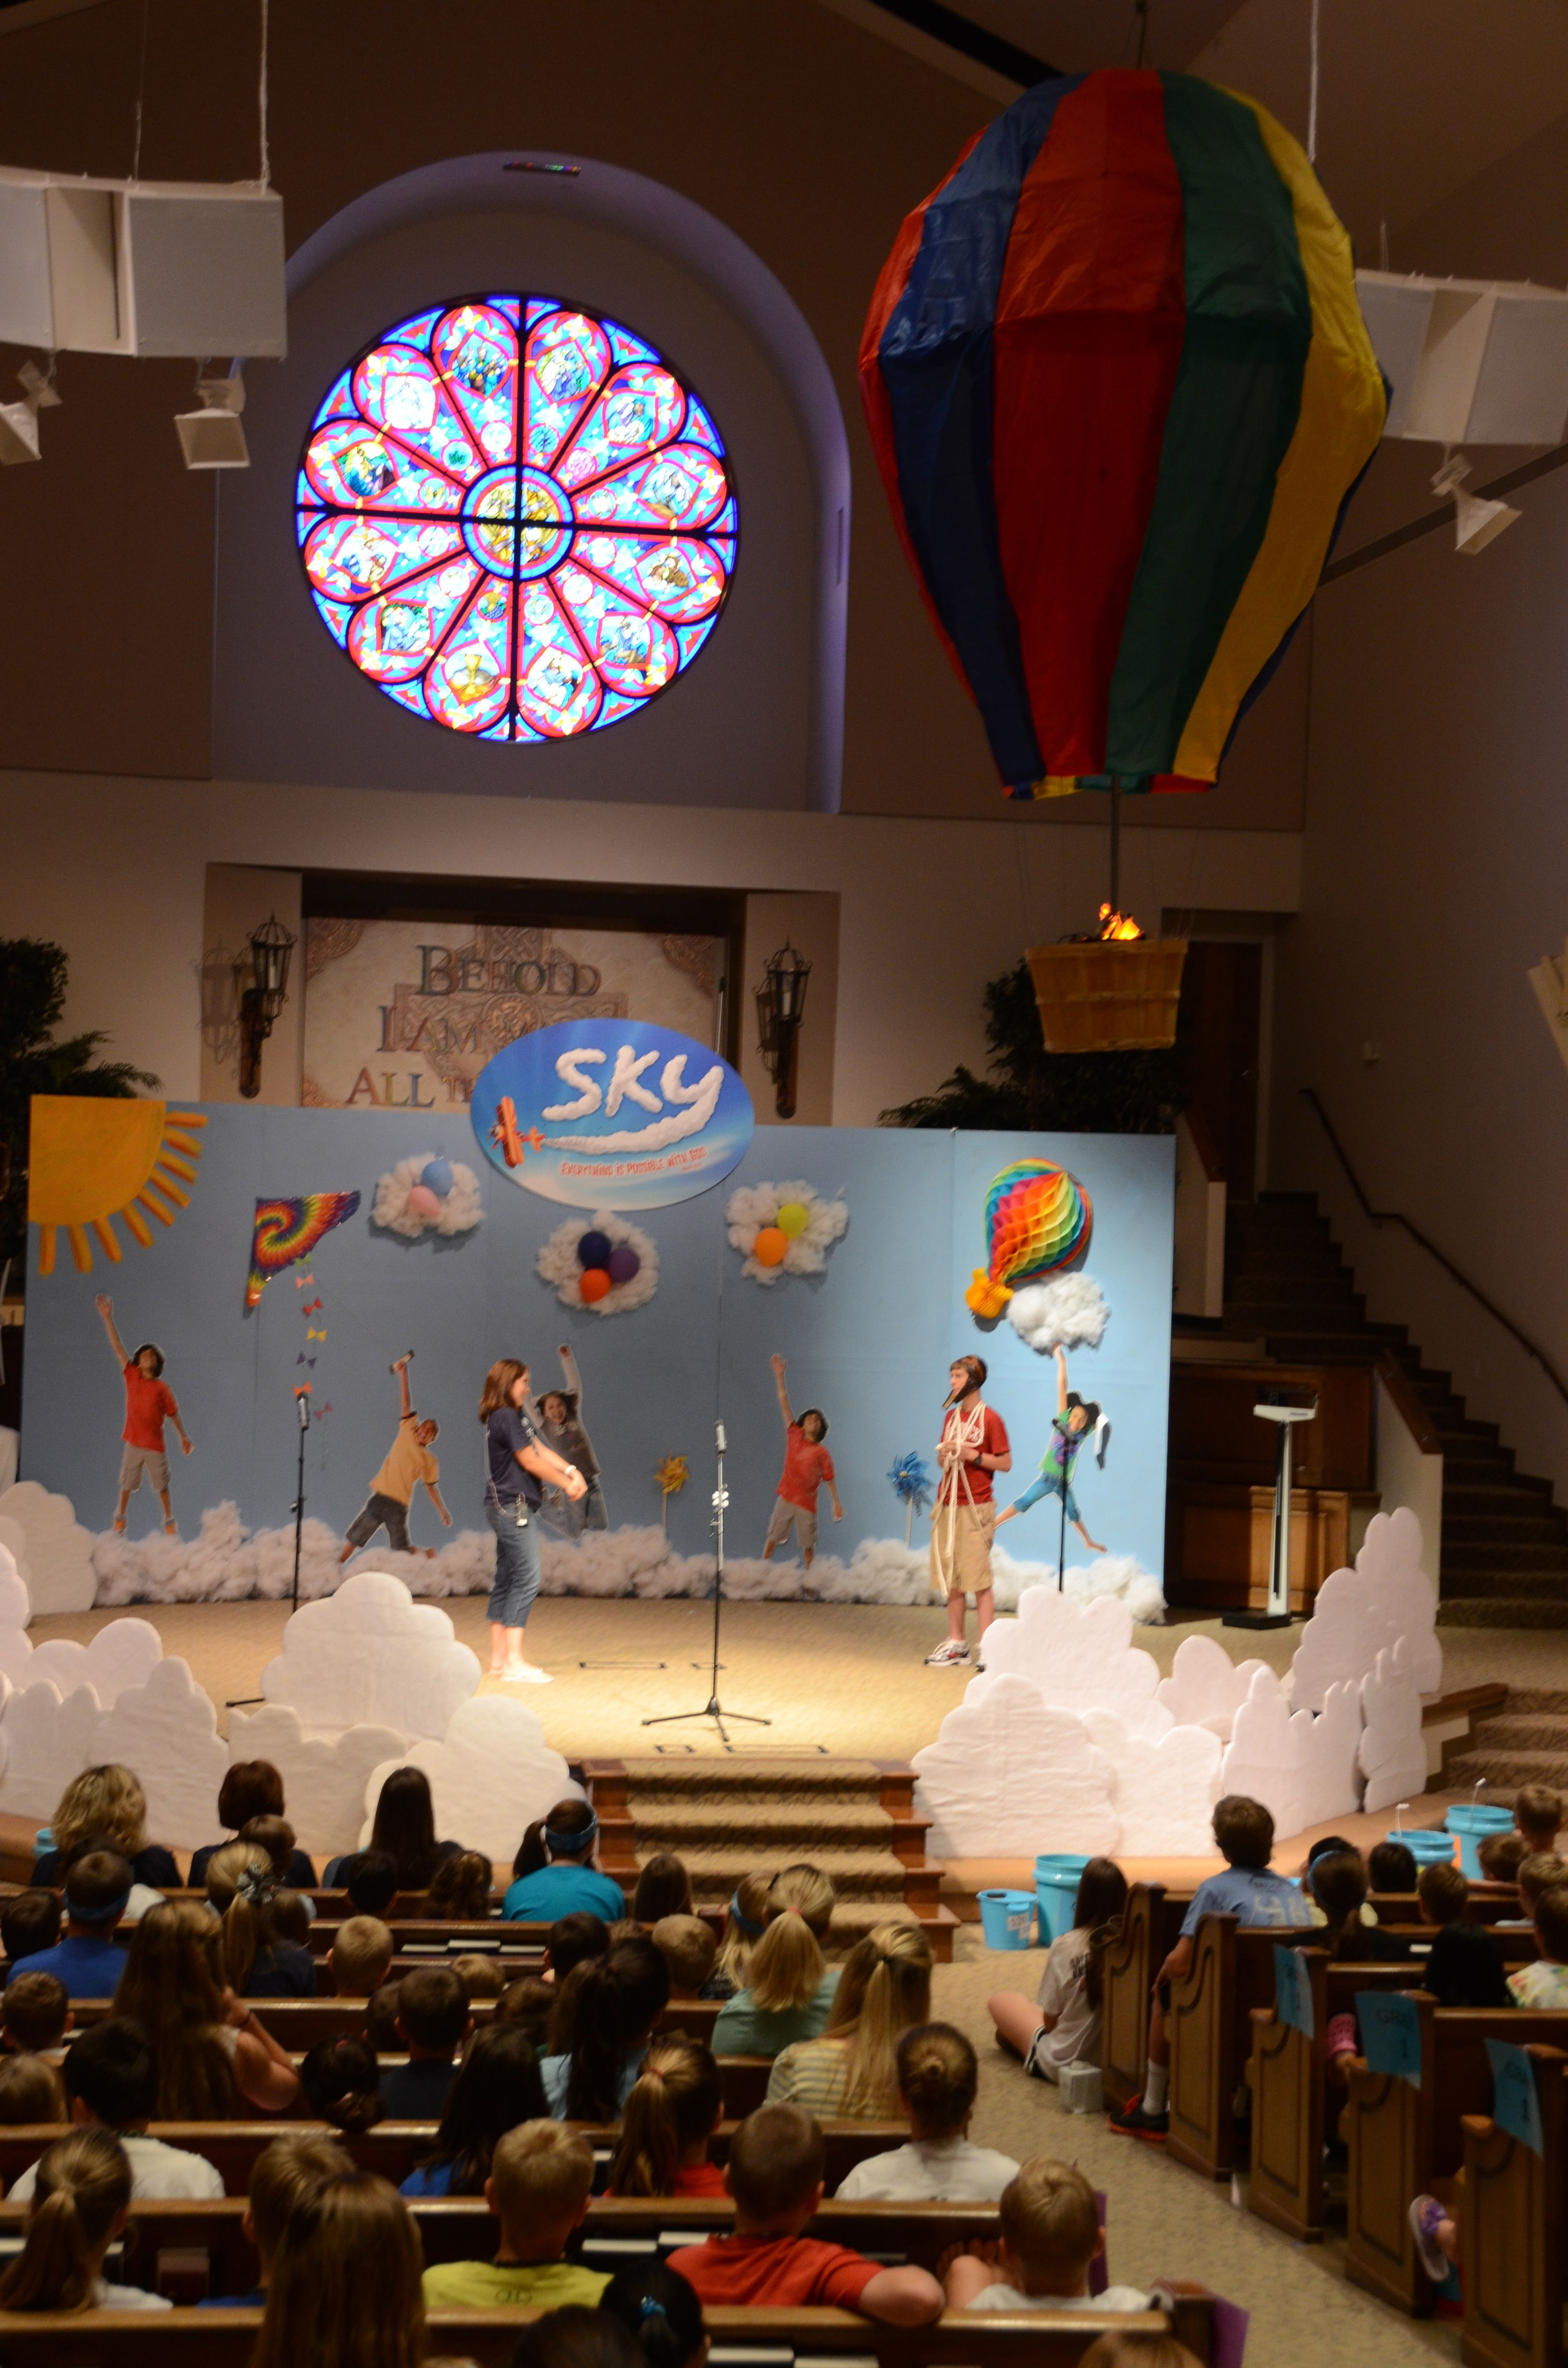 Sky vbs sky vbs pinterest vbs 2016 church ideas and sky vbs malvernweather Images